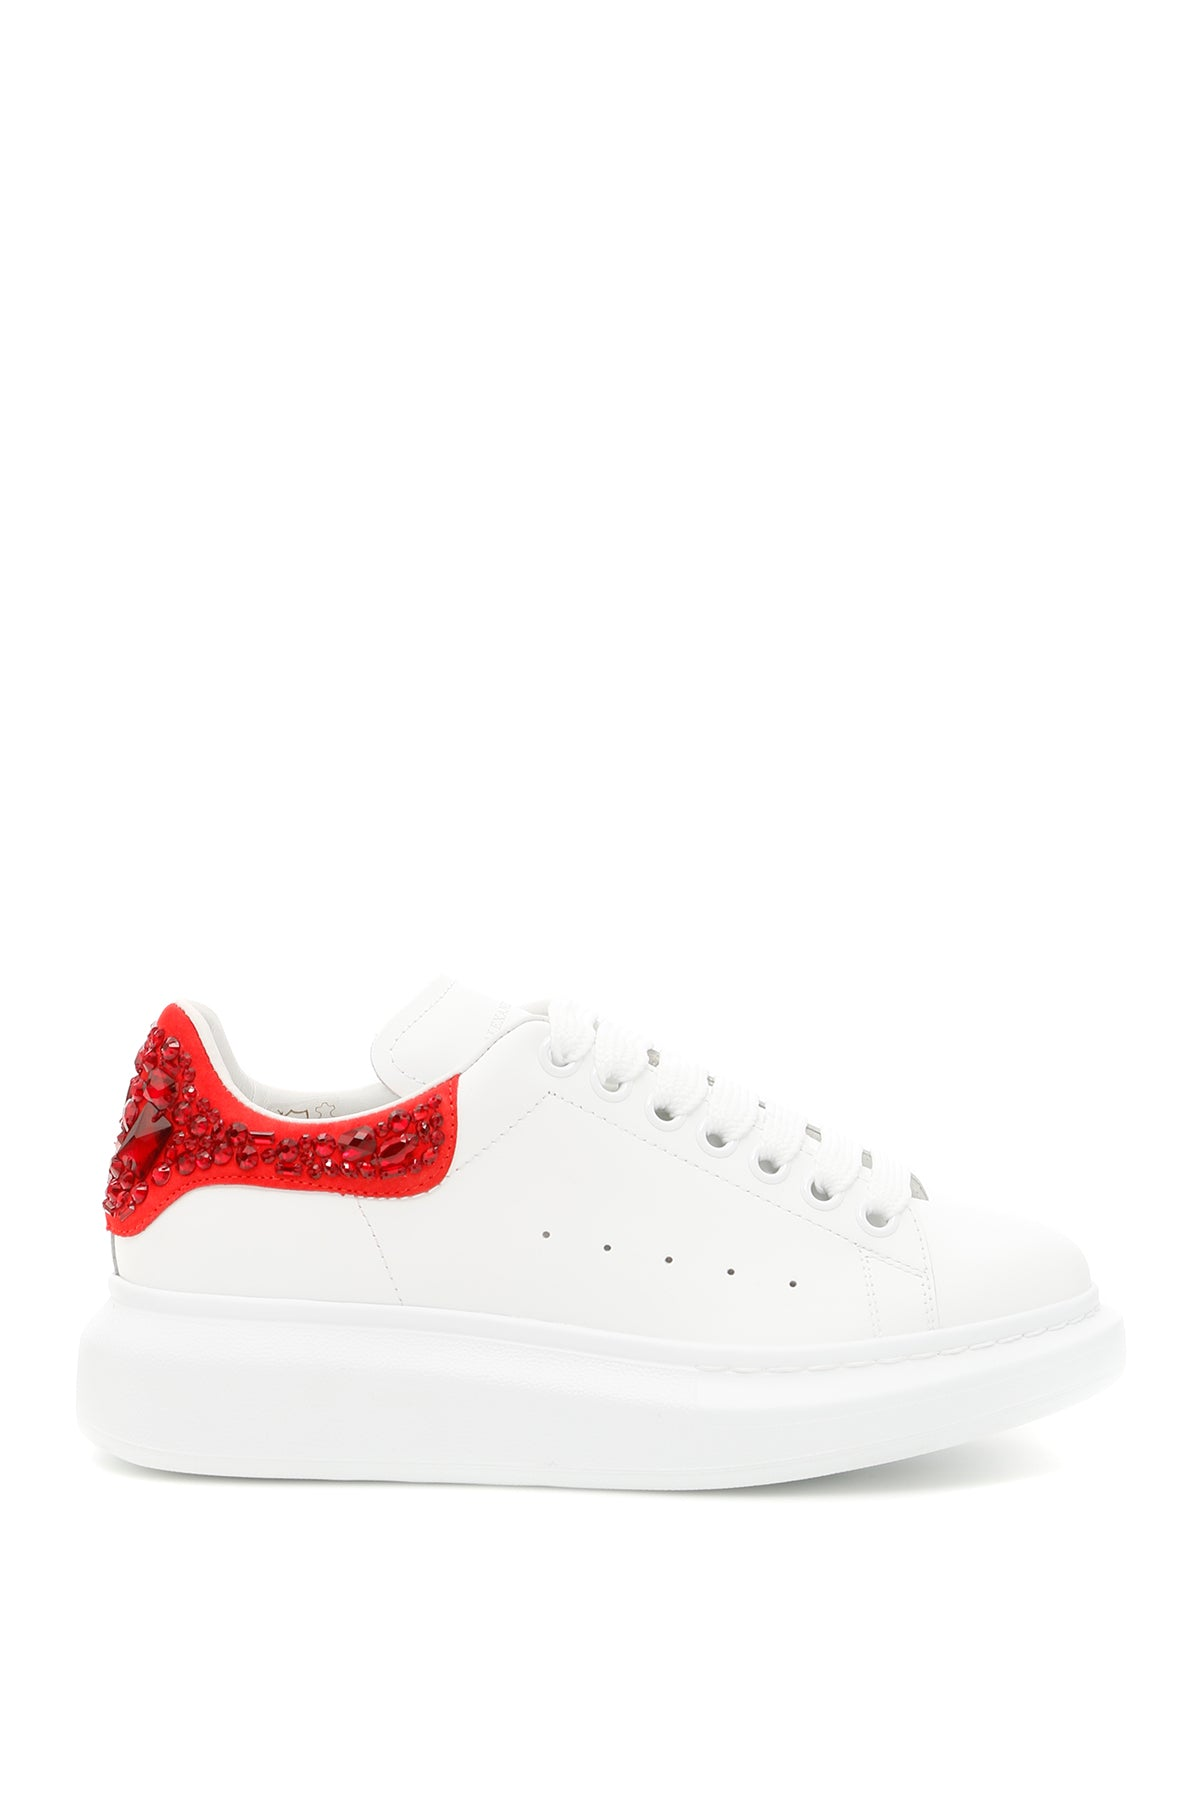 ALEXANDER MCQUEEN EMBELLISHED ANKLE CHUNKY SNEAKERS